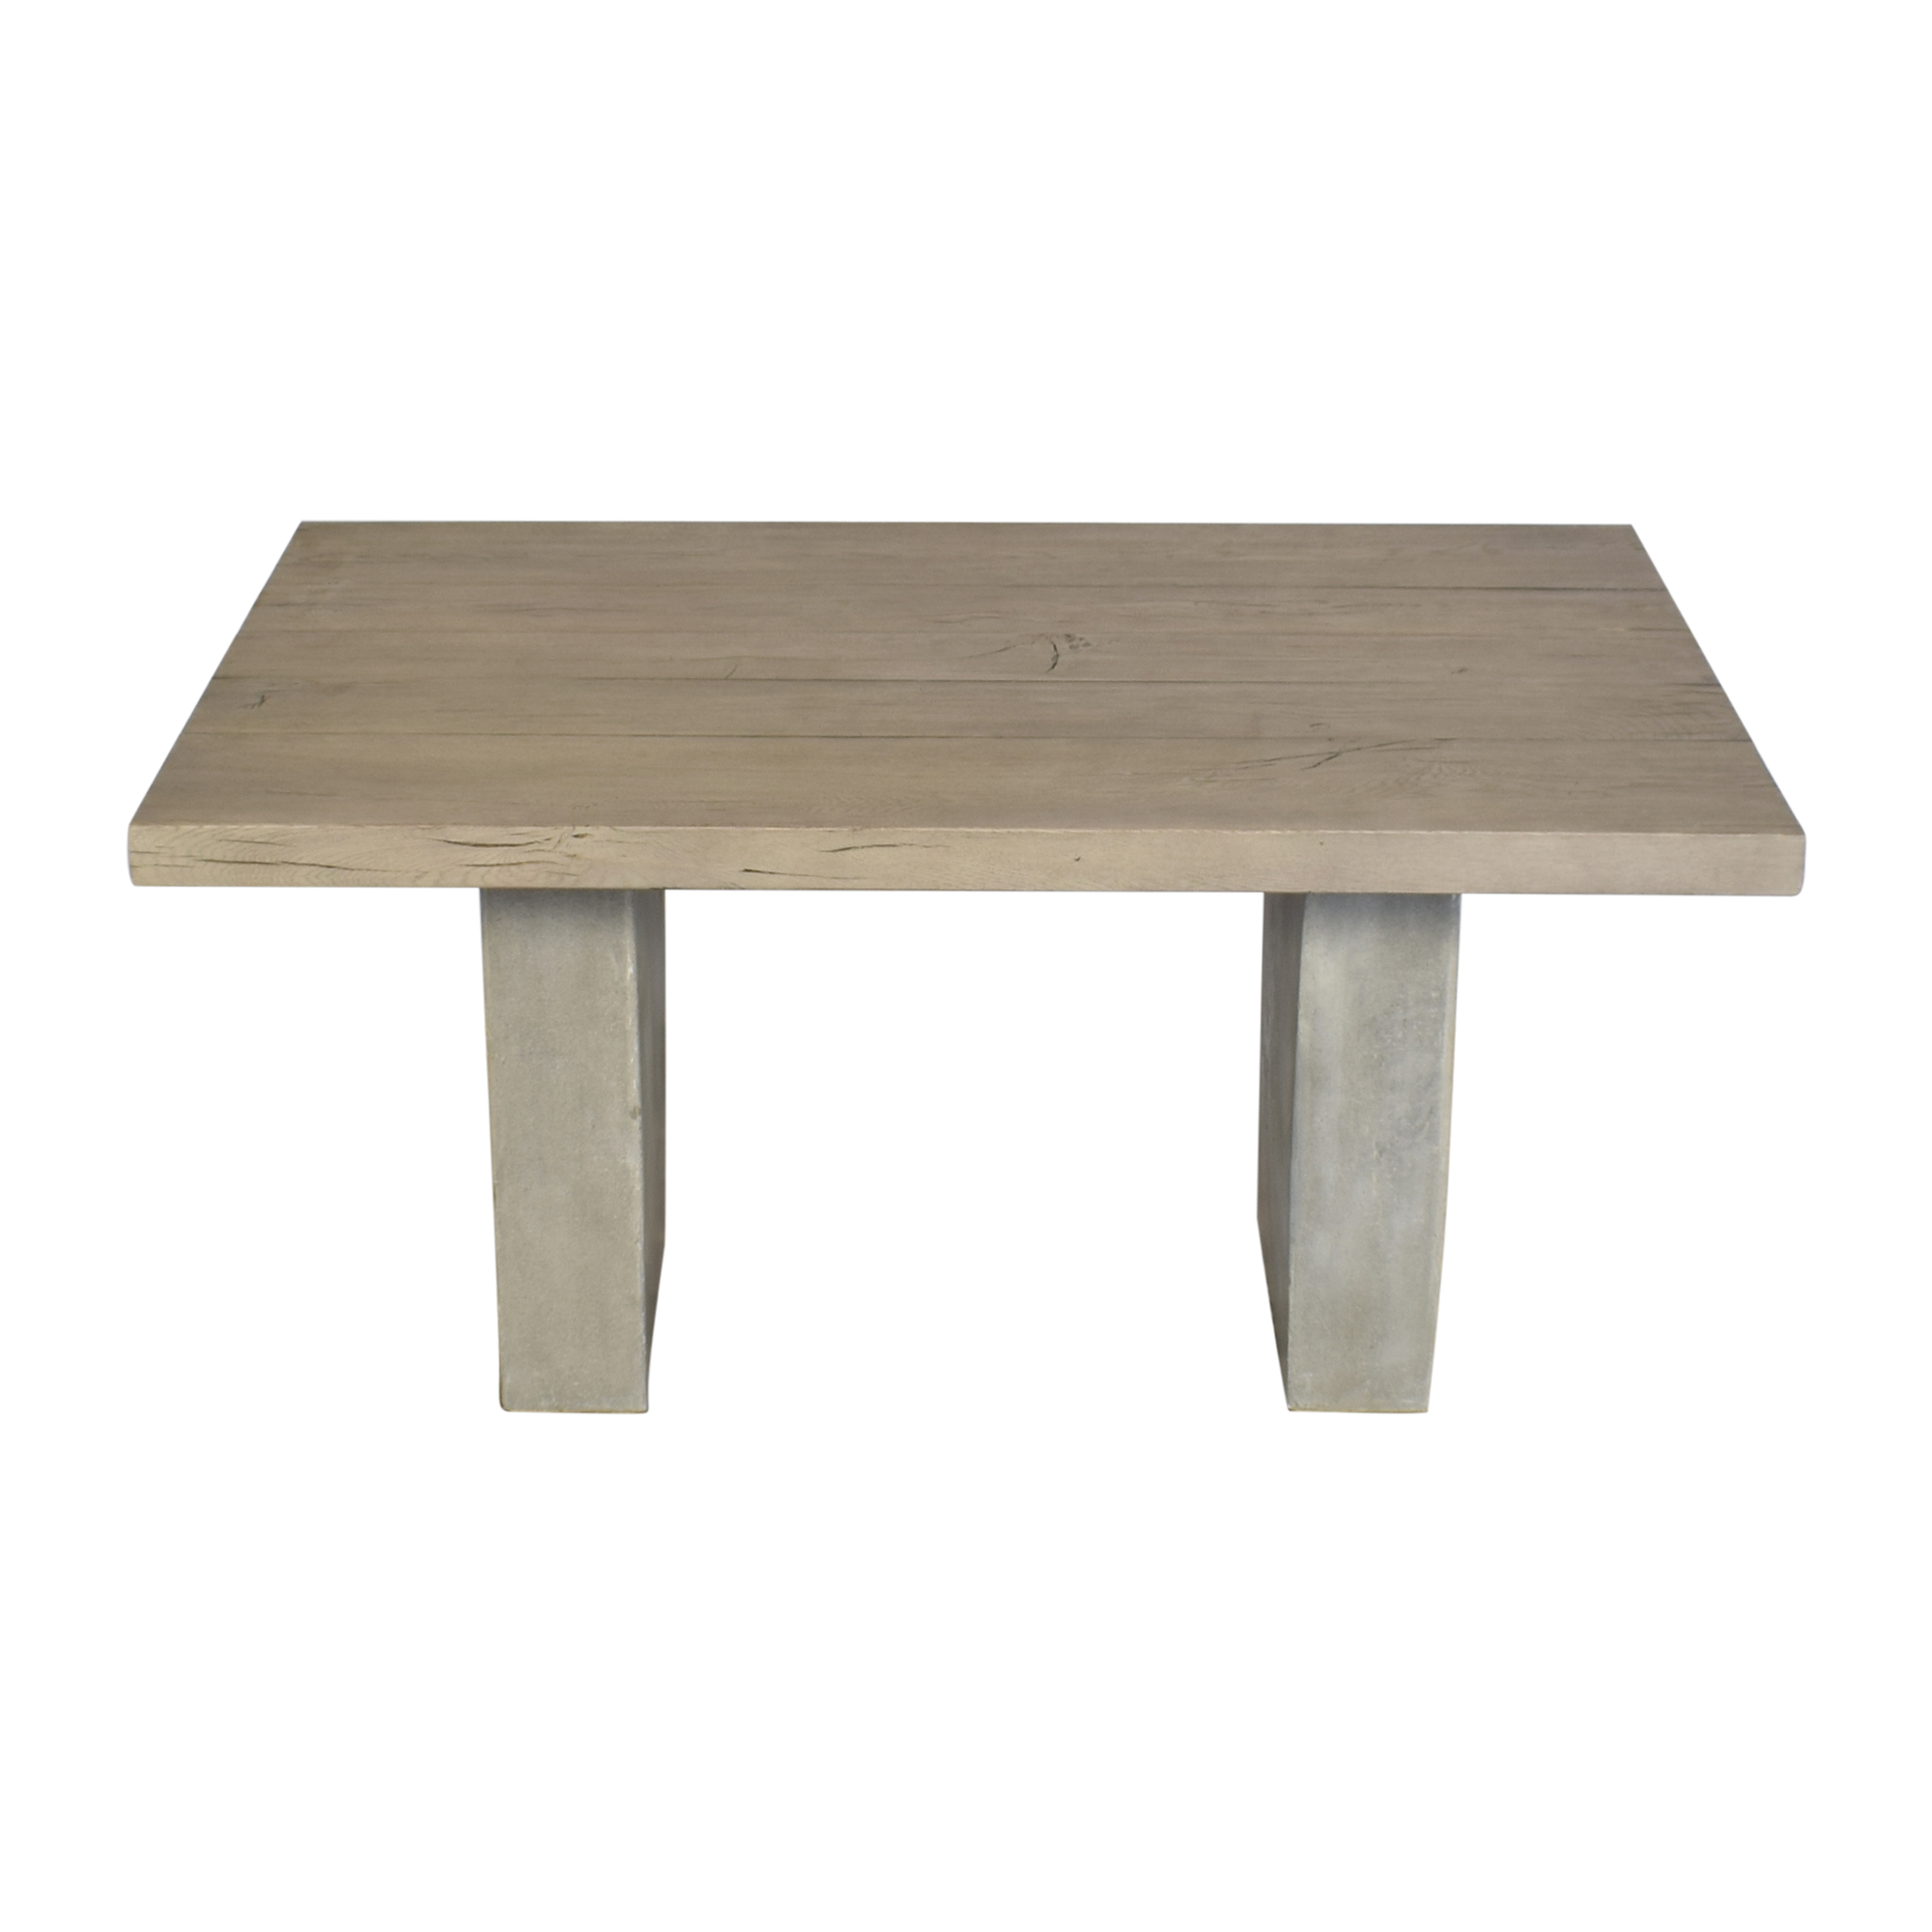 Restoration Hardware Restoration Hardware Concrete Pier Rectangular Dining Table for sale